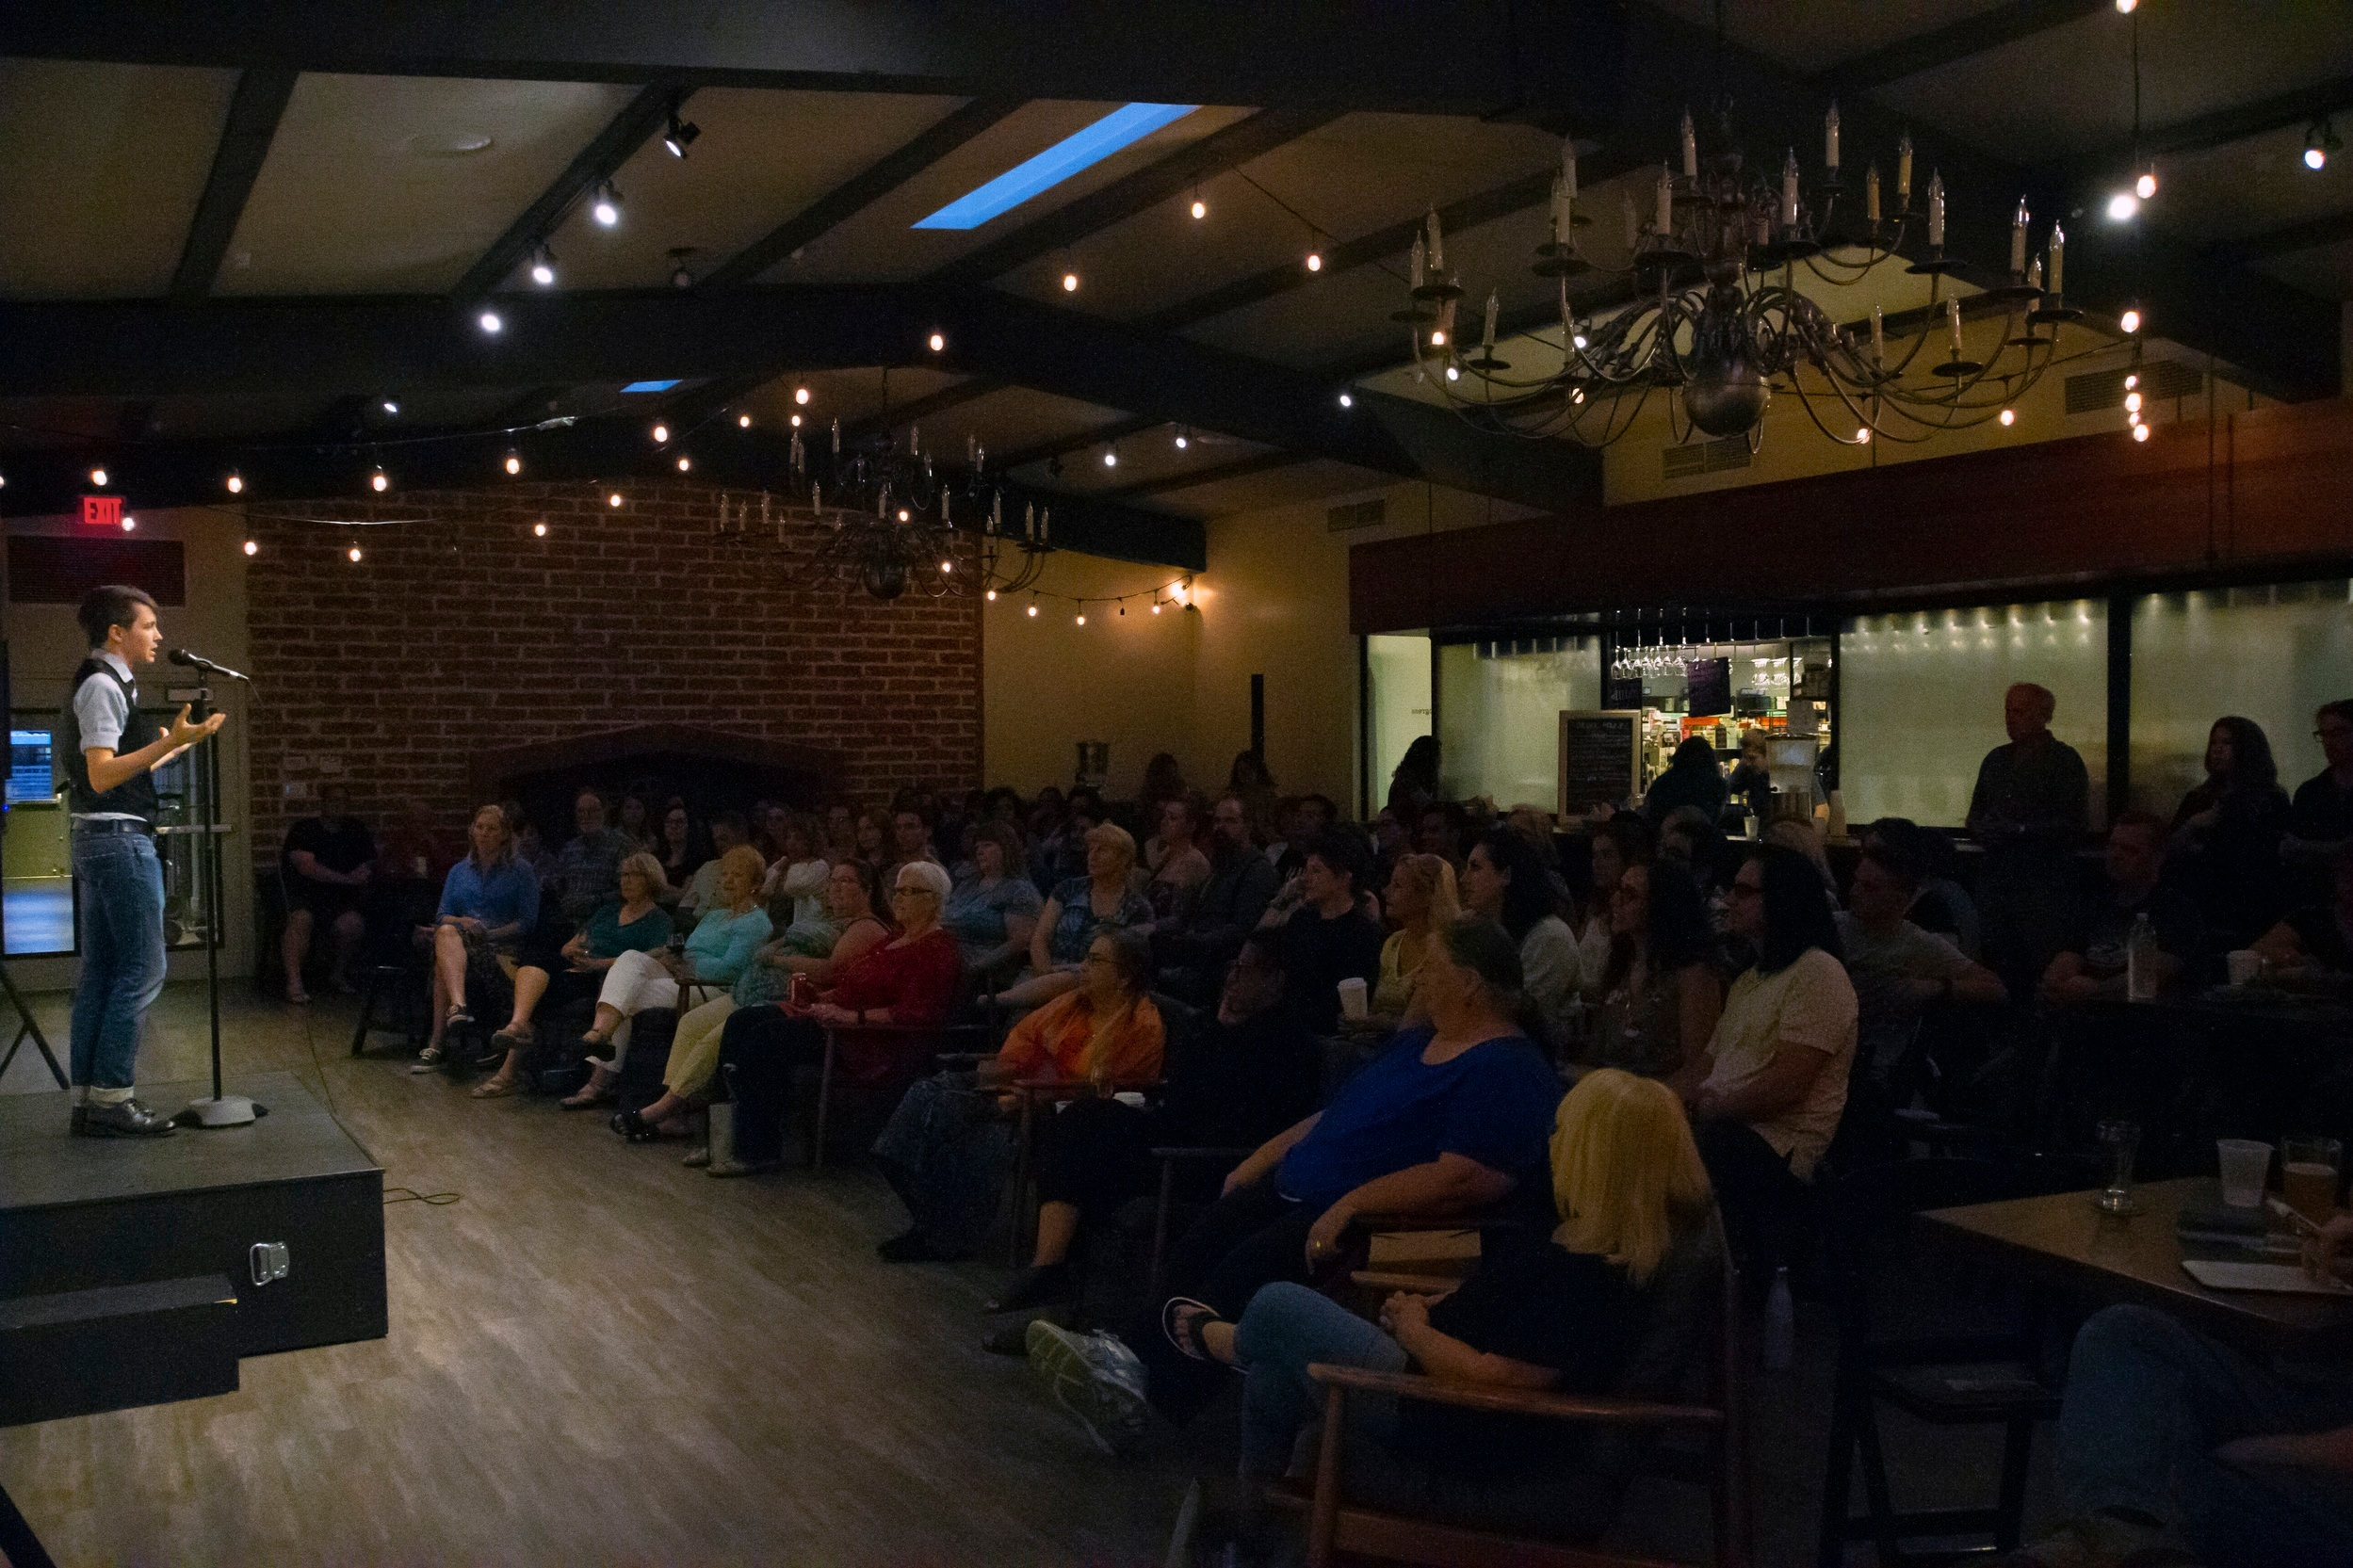 Photo taken at The Storyline Slam by Gary Pratt